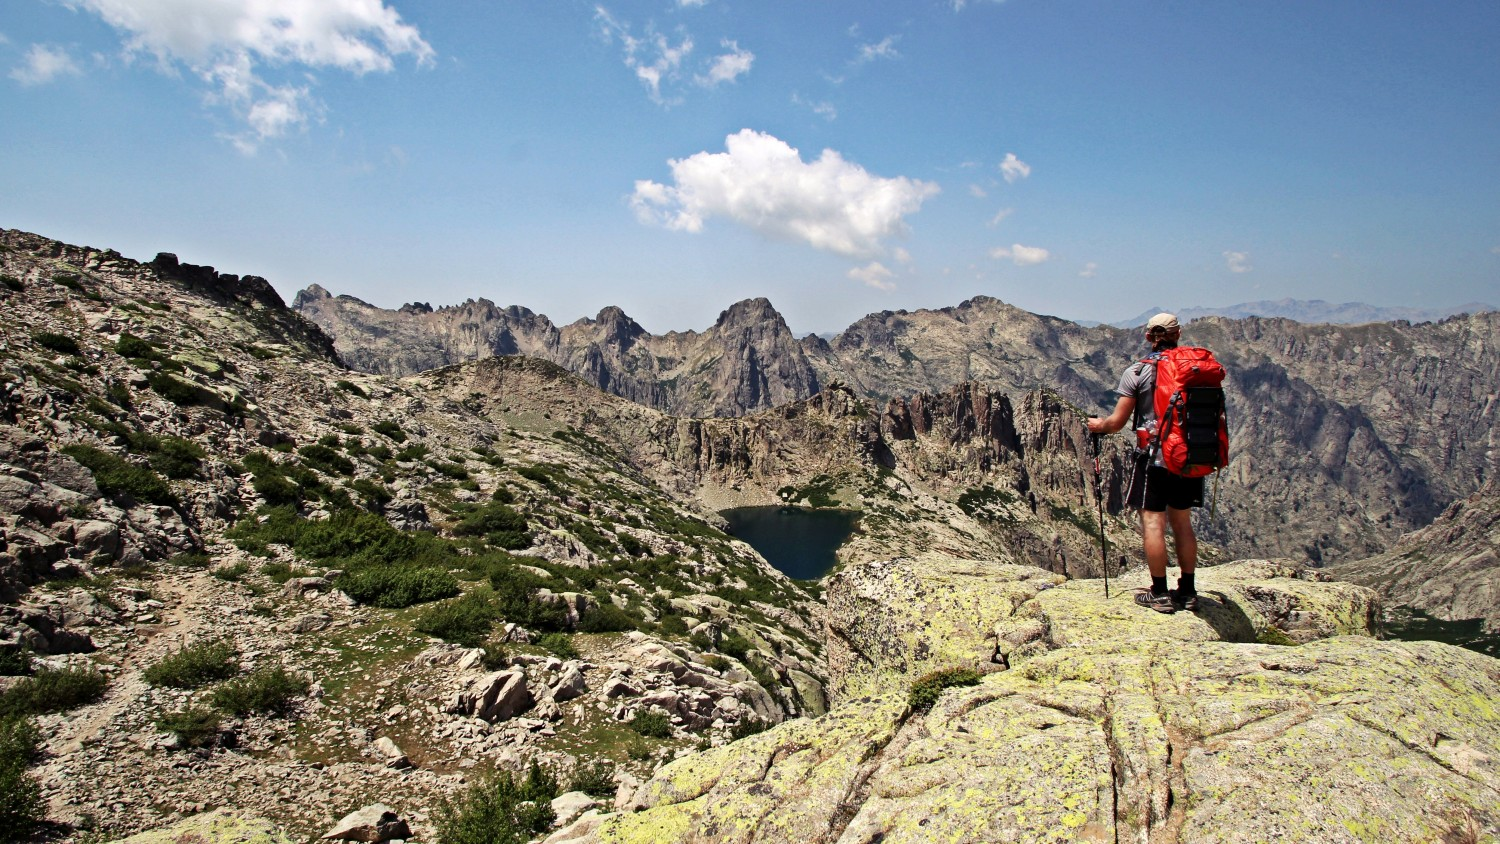 The GR20 is the toughest hike in Europe but also one of the best. Here's why.